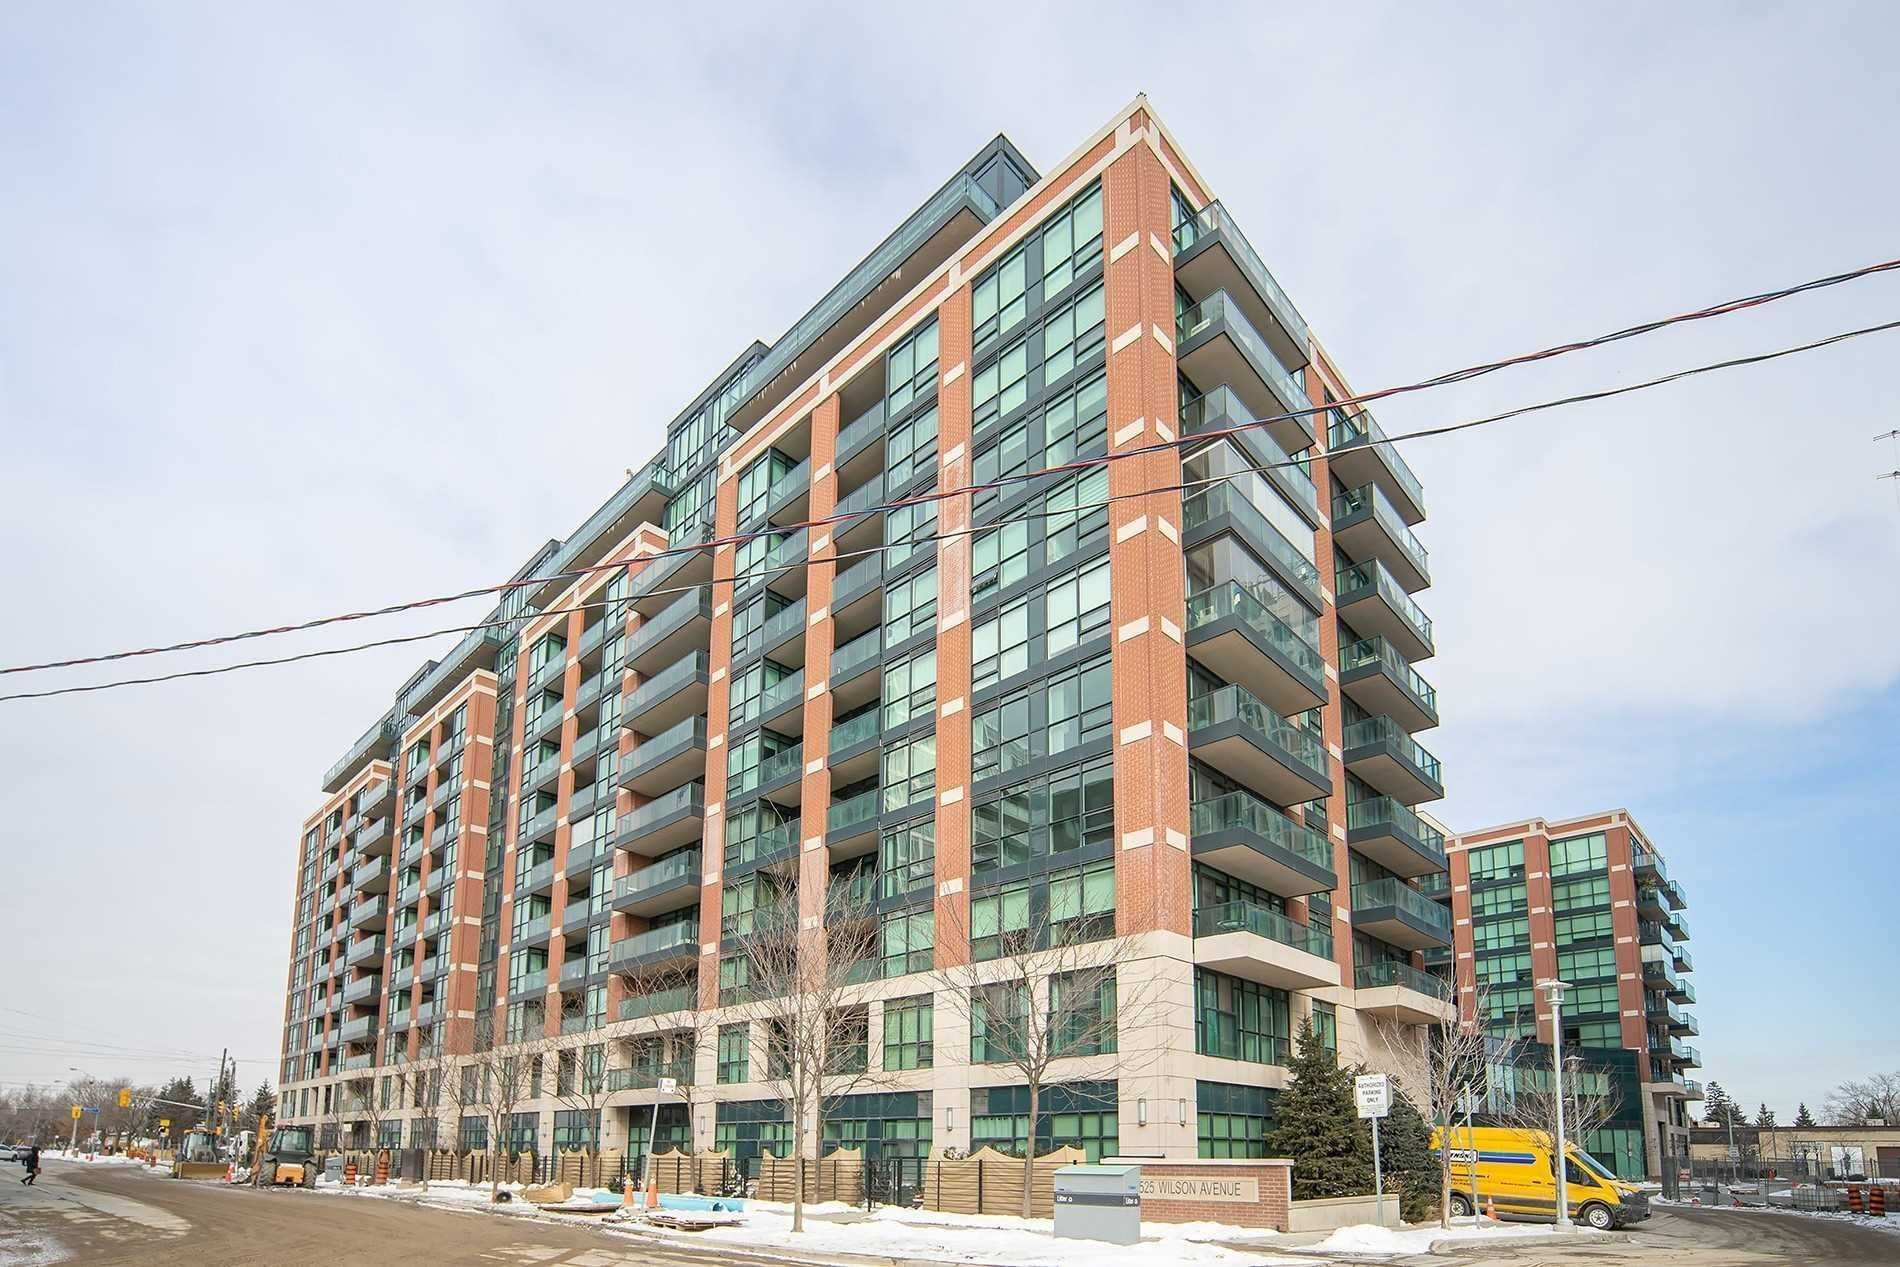 Main Photo: 428 525 Wilson Avenue in Toronto: Clanton Park Condo for lease (Toronto C06)  : MLS®# C4754904